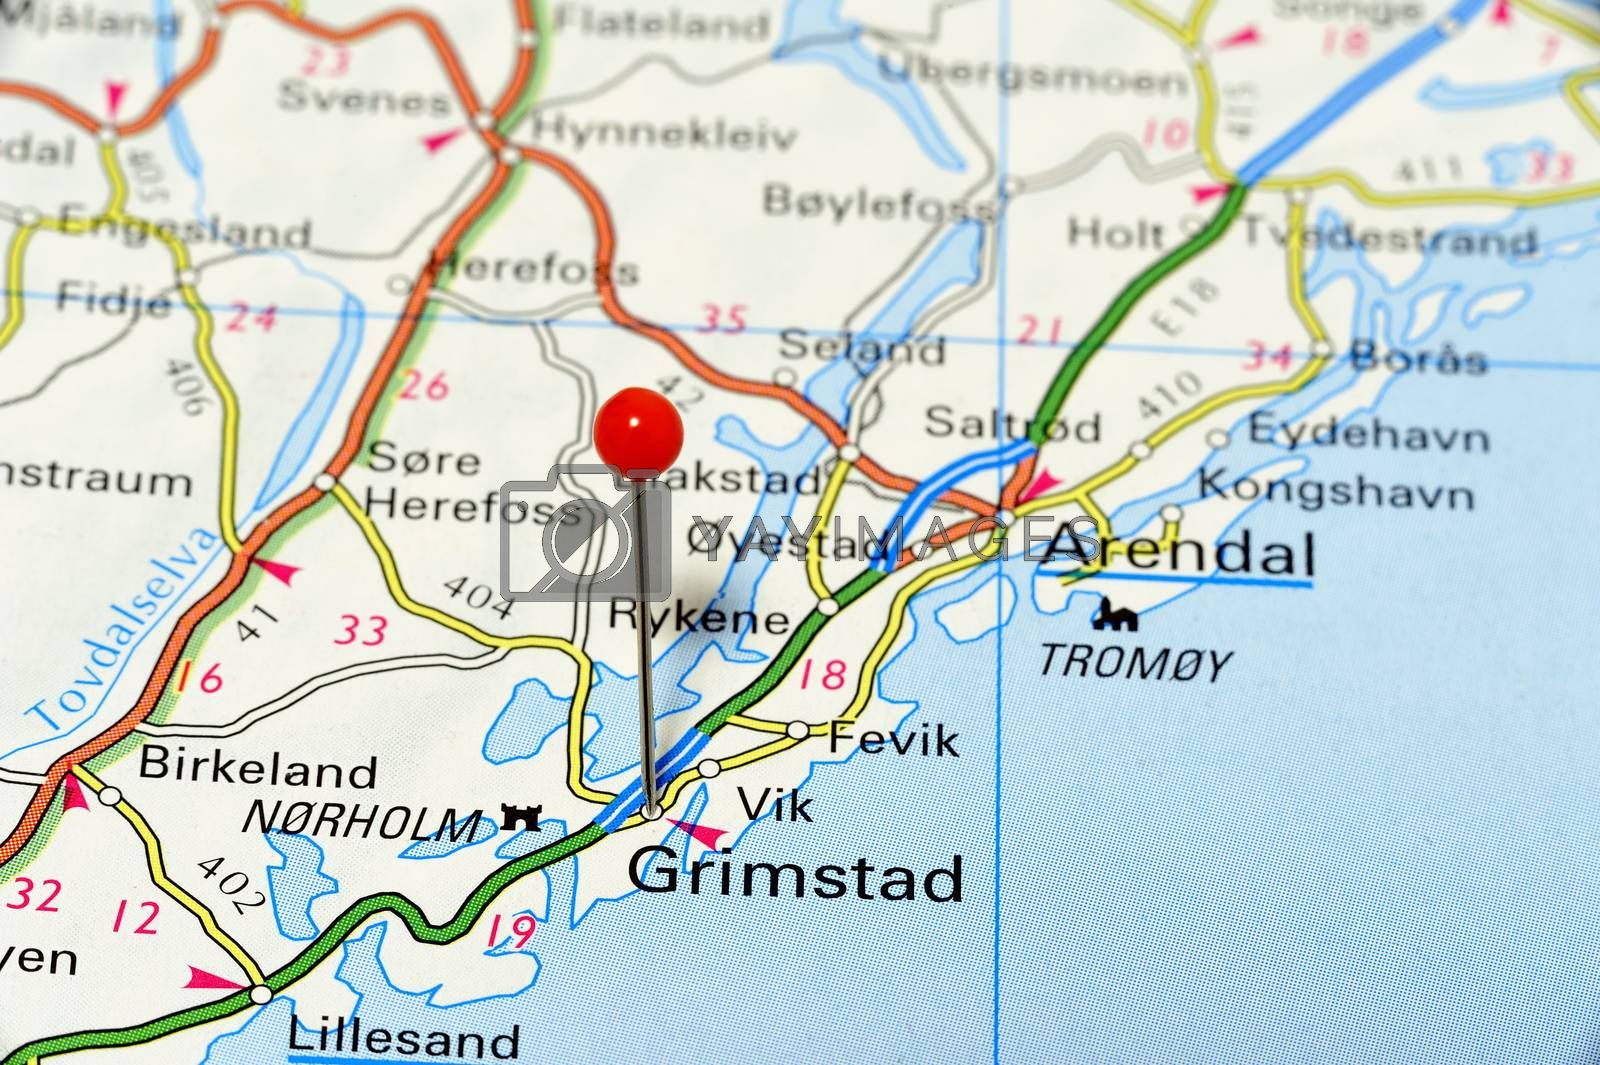 Closup map of Grimstad. Grimstad a city in Norway.